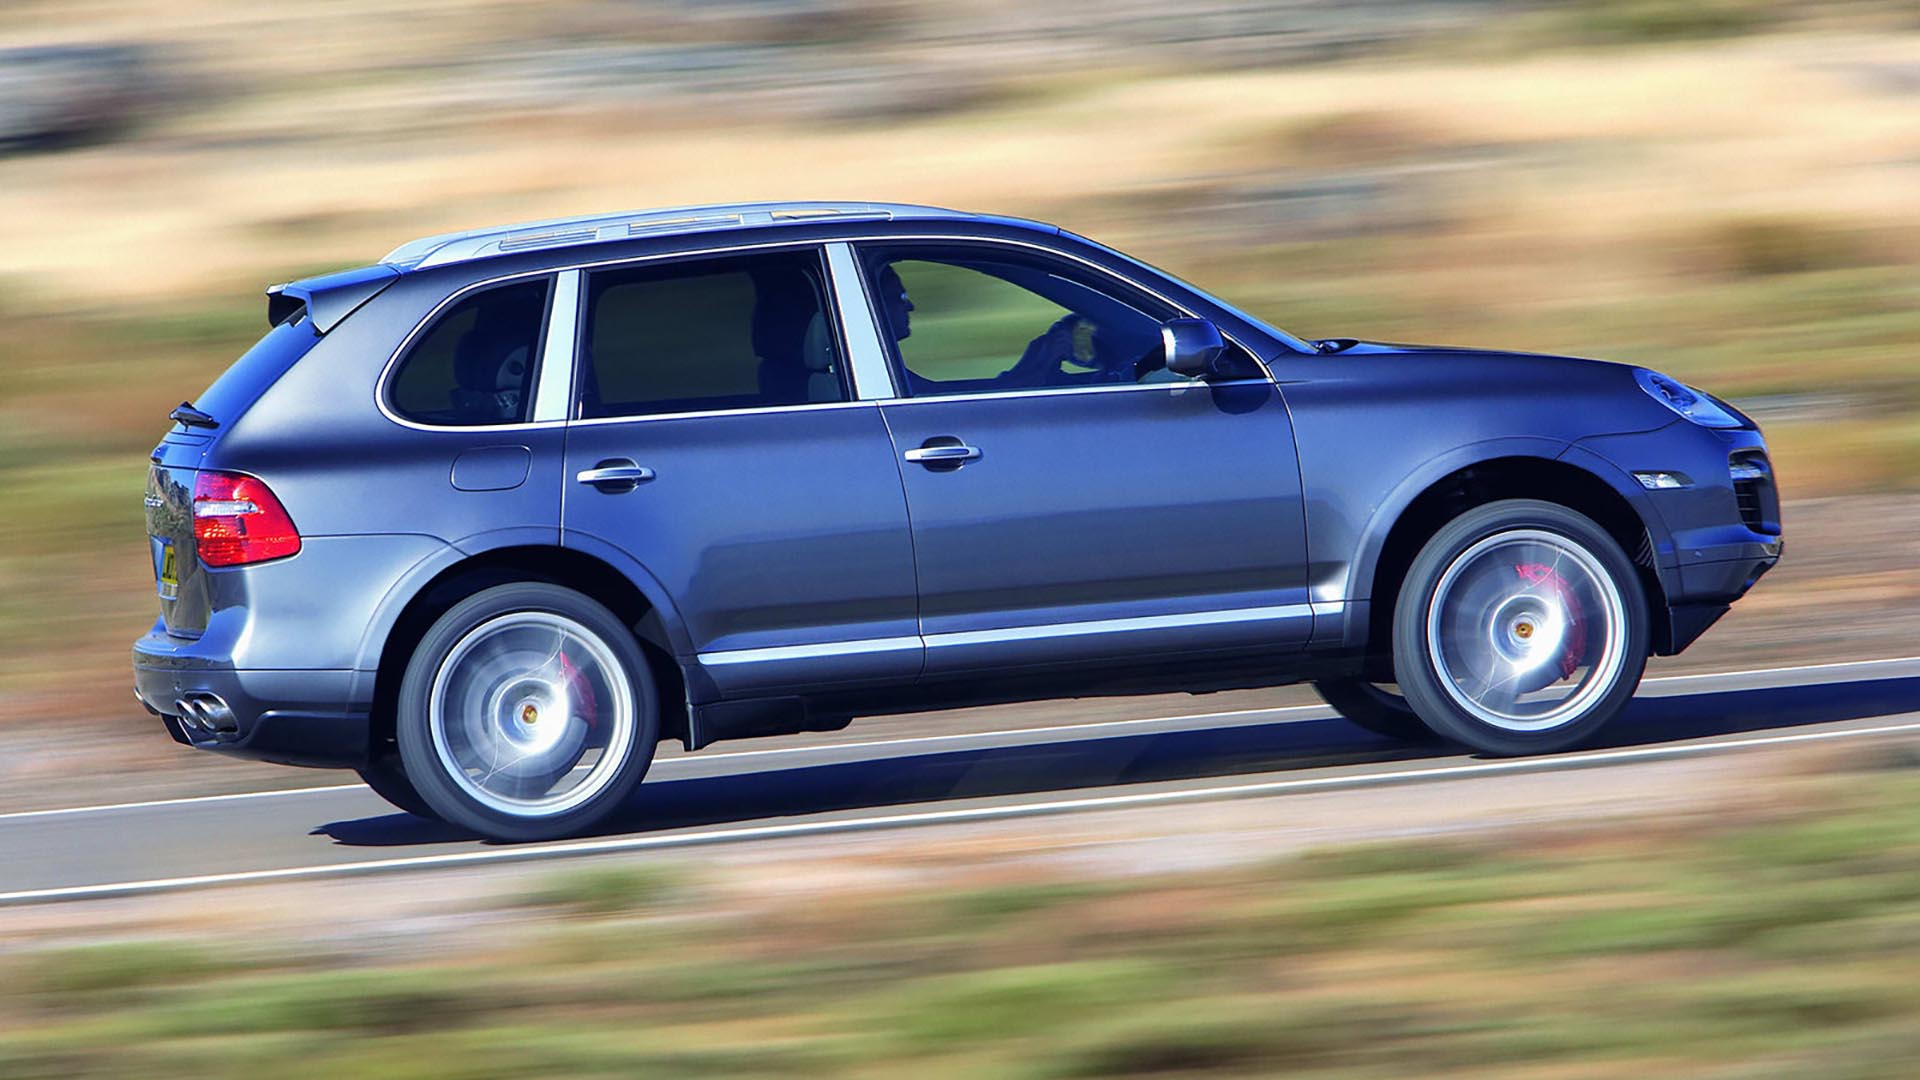 The Definitive Guide To First-Generation Porsche Cayenne Brakes (955 & 957)